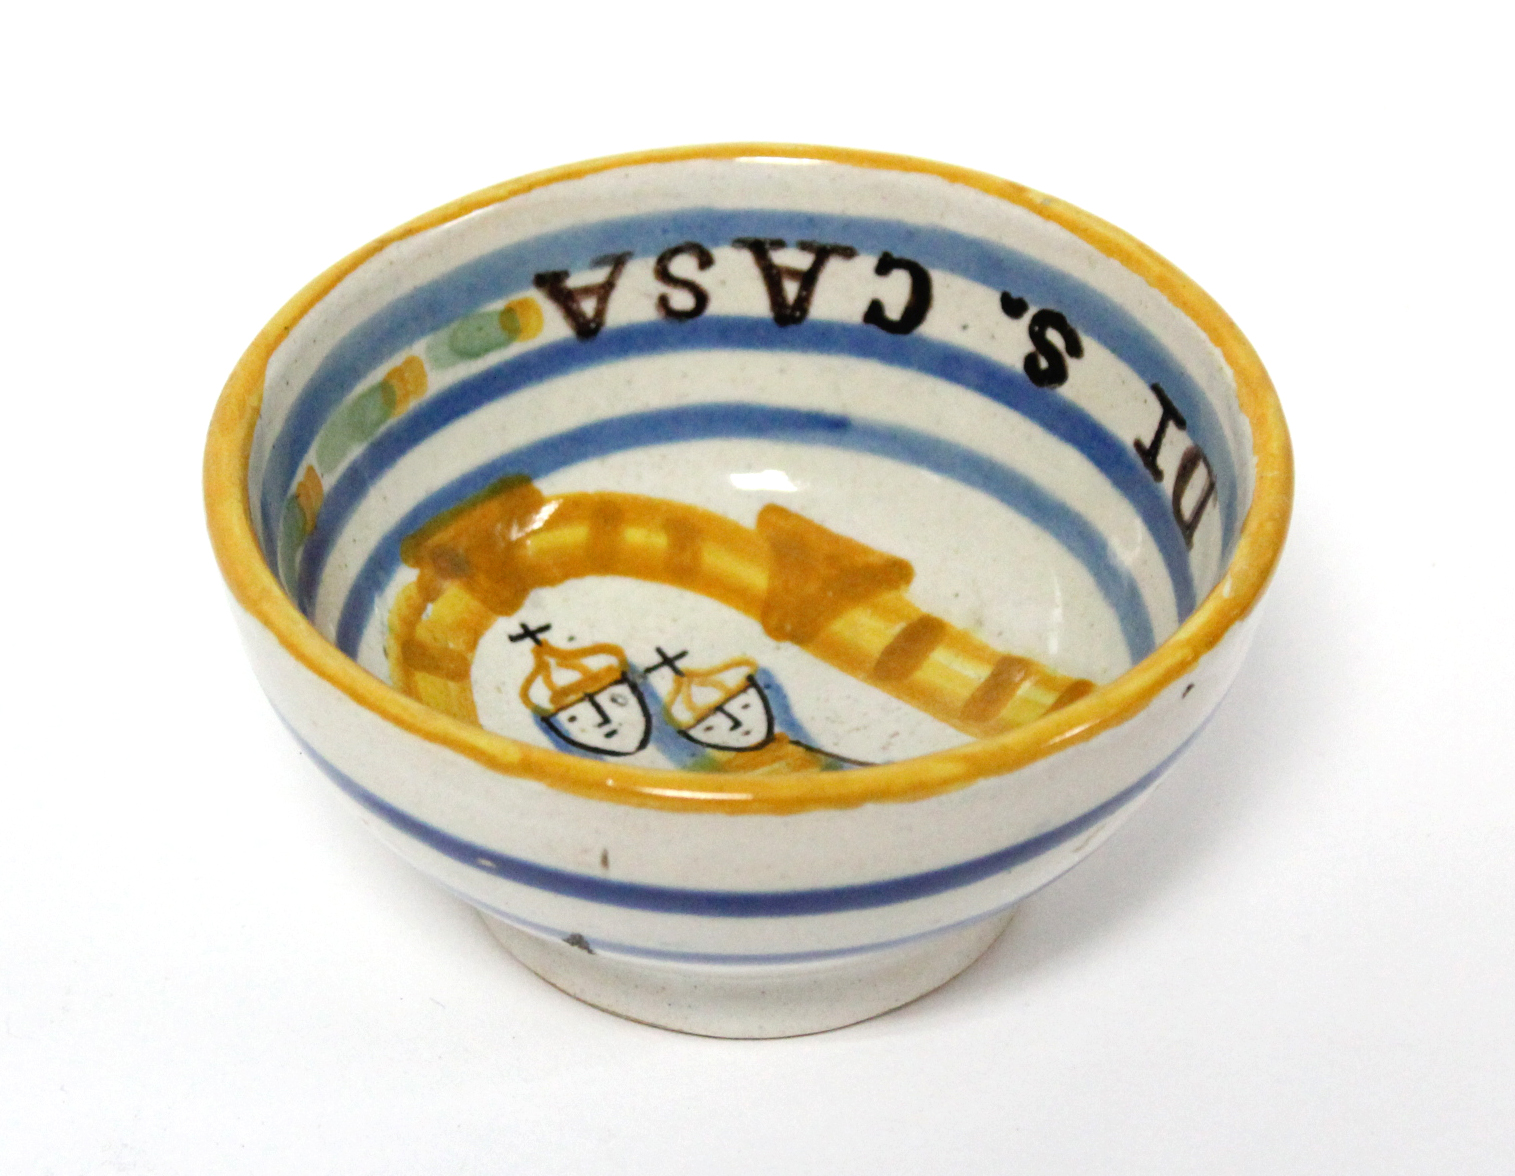 Lot 55 - An Italian polychrome faience pilgrim's bowl, decorated with the Virgin Mary & Child, inscribed: ""